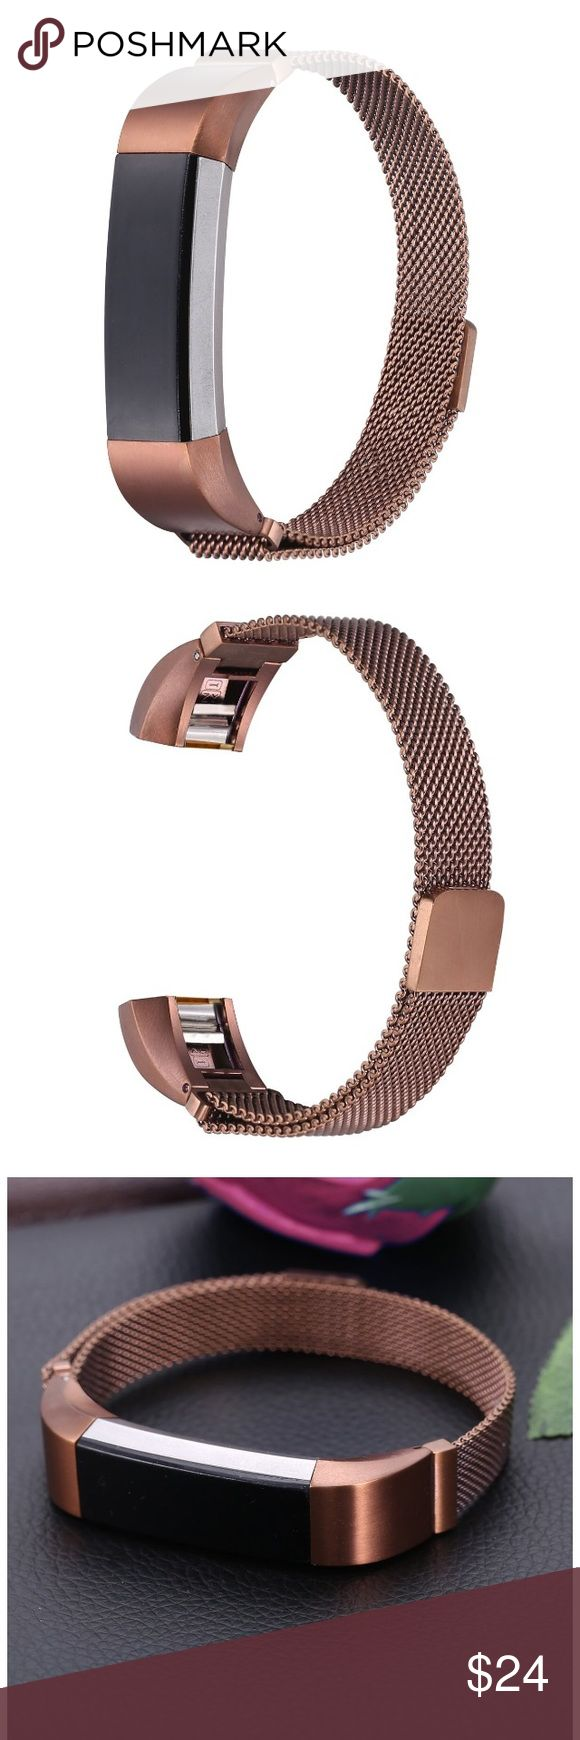 💜CHIC FITBIT BAND/COFFEE BROWN MILANESE LOOP MESH This very sturdy Milanese mesh adjustable band has very strong magnets to hold it secure. Turn your FITBIT fitness tracker into a fashion statement piece bracelet. AVAILABLE in SILVER, GOLD, BLACK, ROSEGOLD & PINK. Very easy to attach to your FITBIT!  See other listings for color choices.  It fits the ALTA and HR (Heart rate) models. See listings for fun prints & colors of ALL FITBIT BANDS for various models in silicone, too! I'm always…